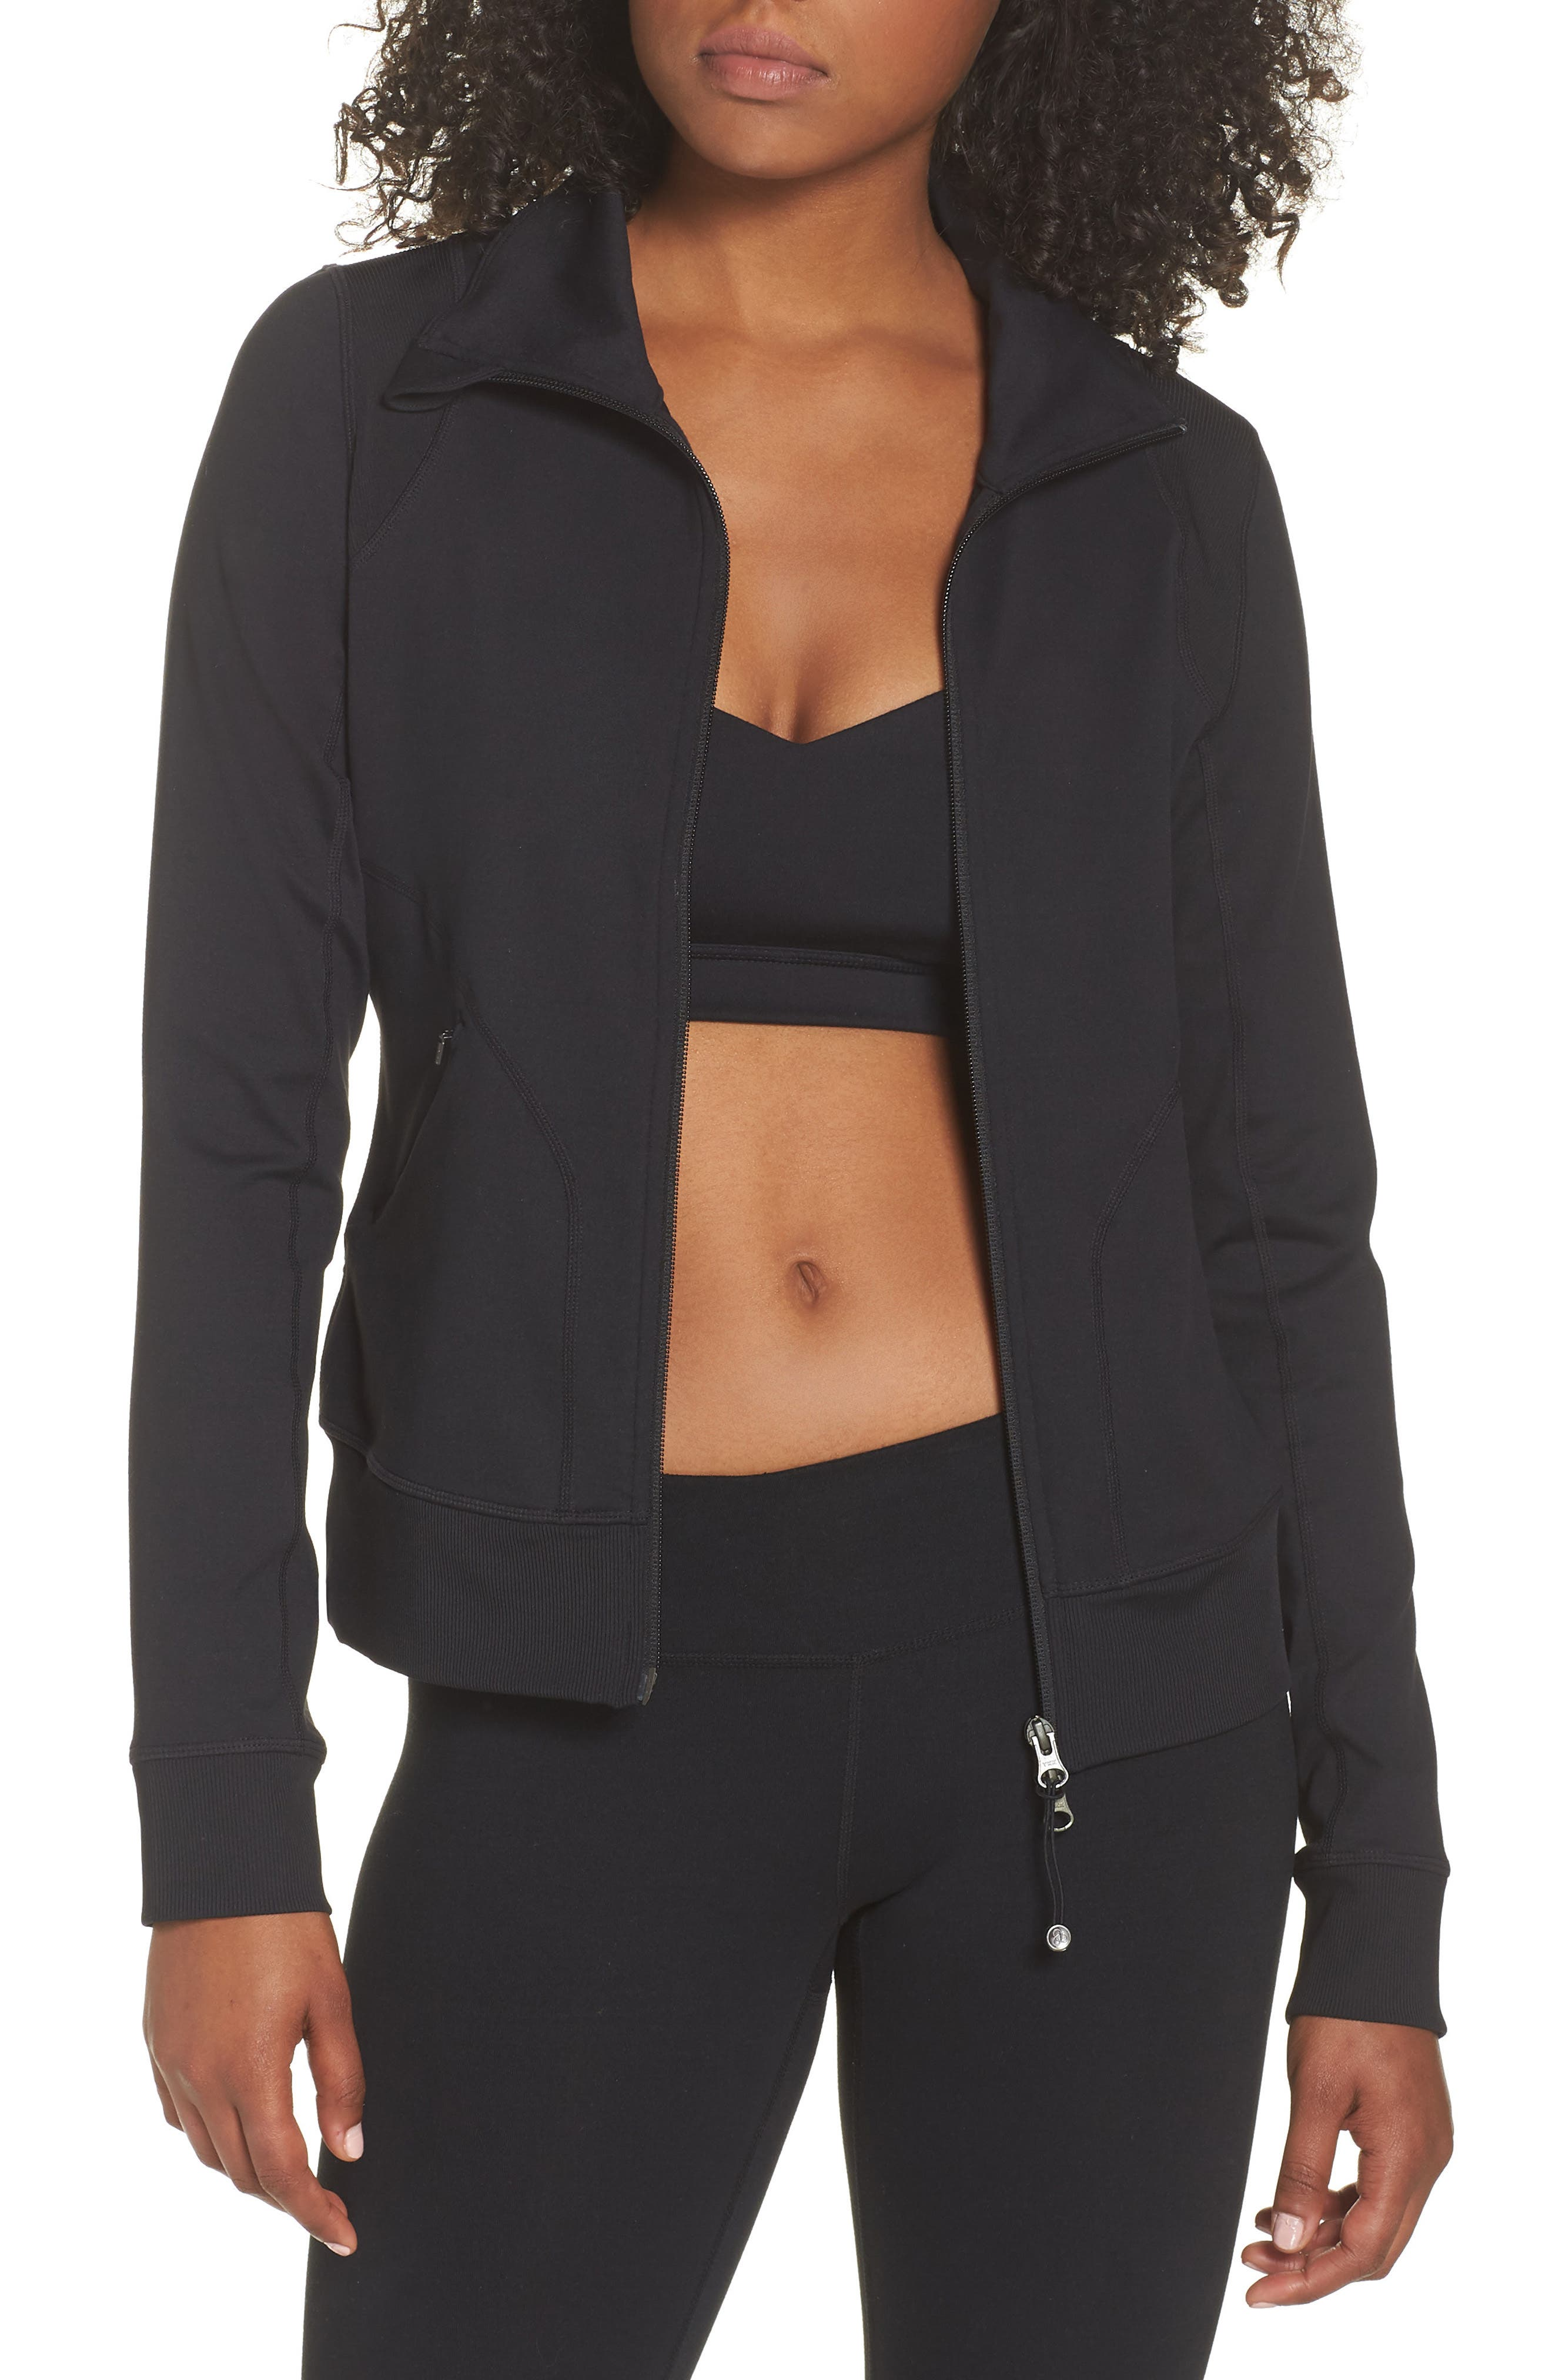 Transcend Jacket by Zella